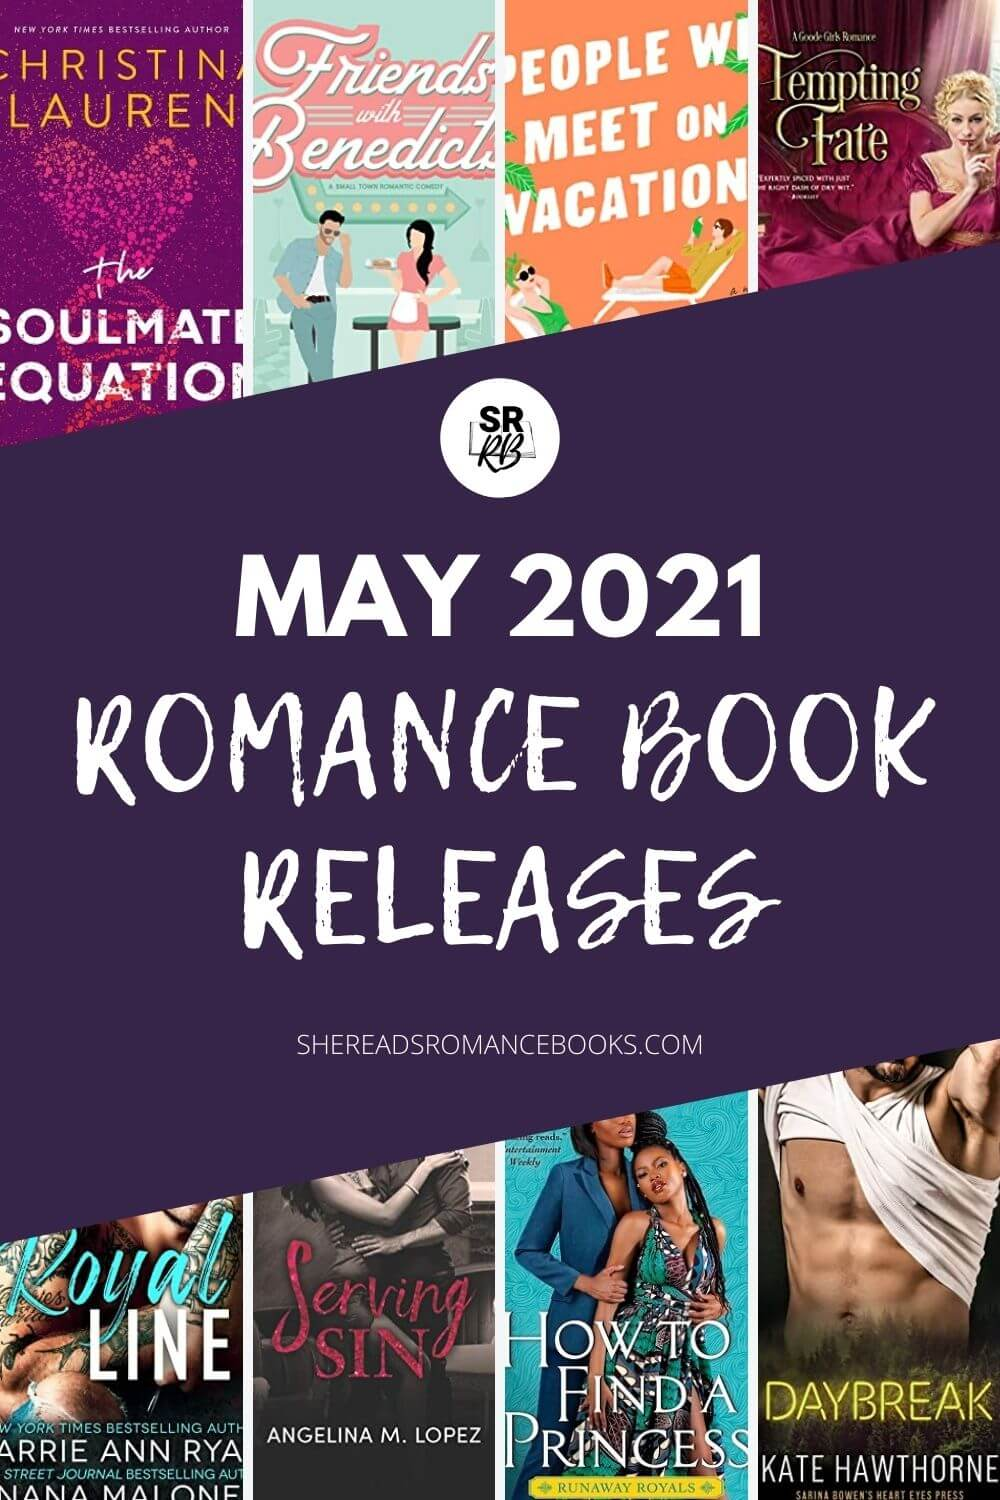 List of most anticipated romance books releasing in May 2021.